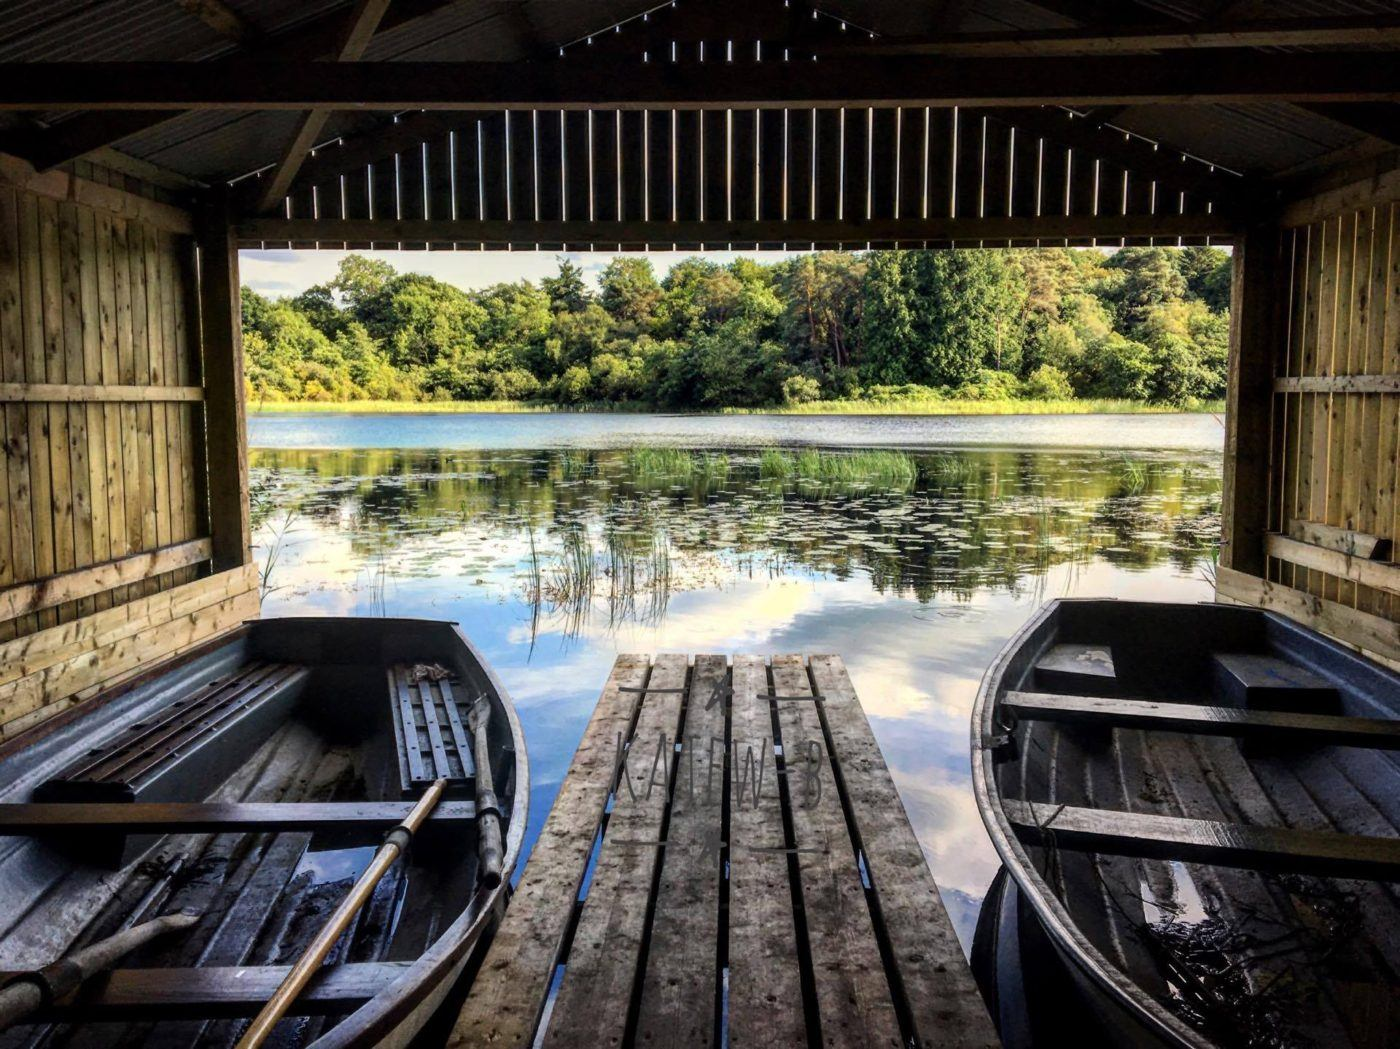 boating private lough lake countryside experience northern Ireland